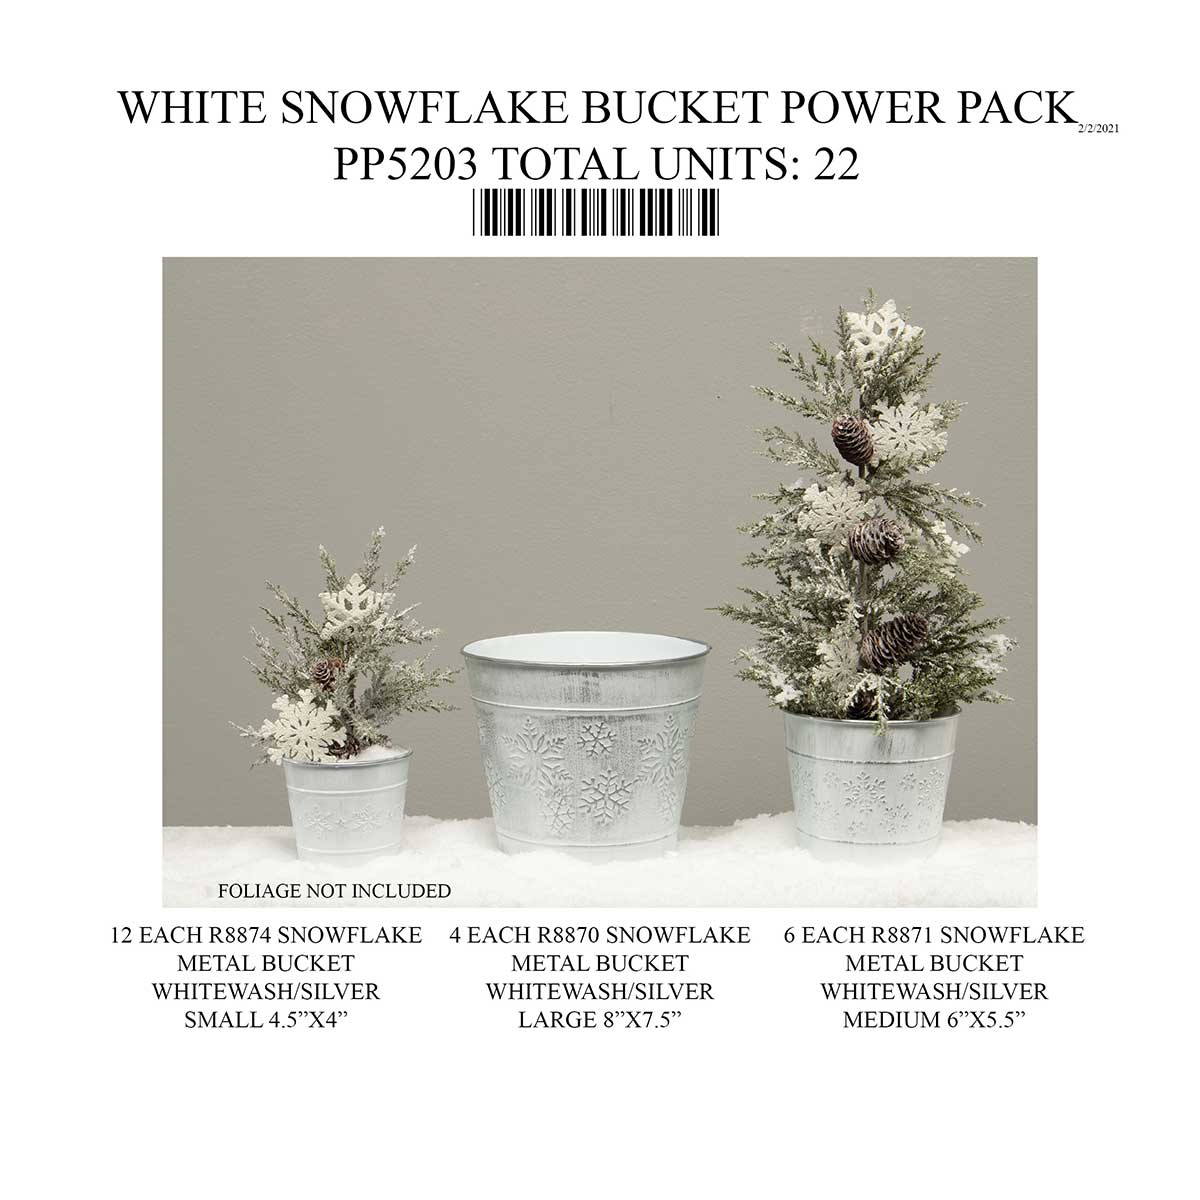 SILVER/WHITE WASHED SNOWFLAKE BUCKET 22 UNITS PP5203